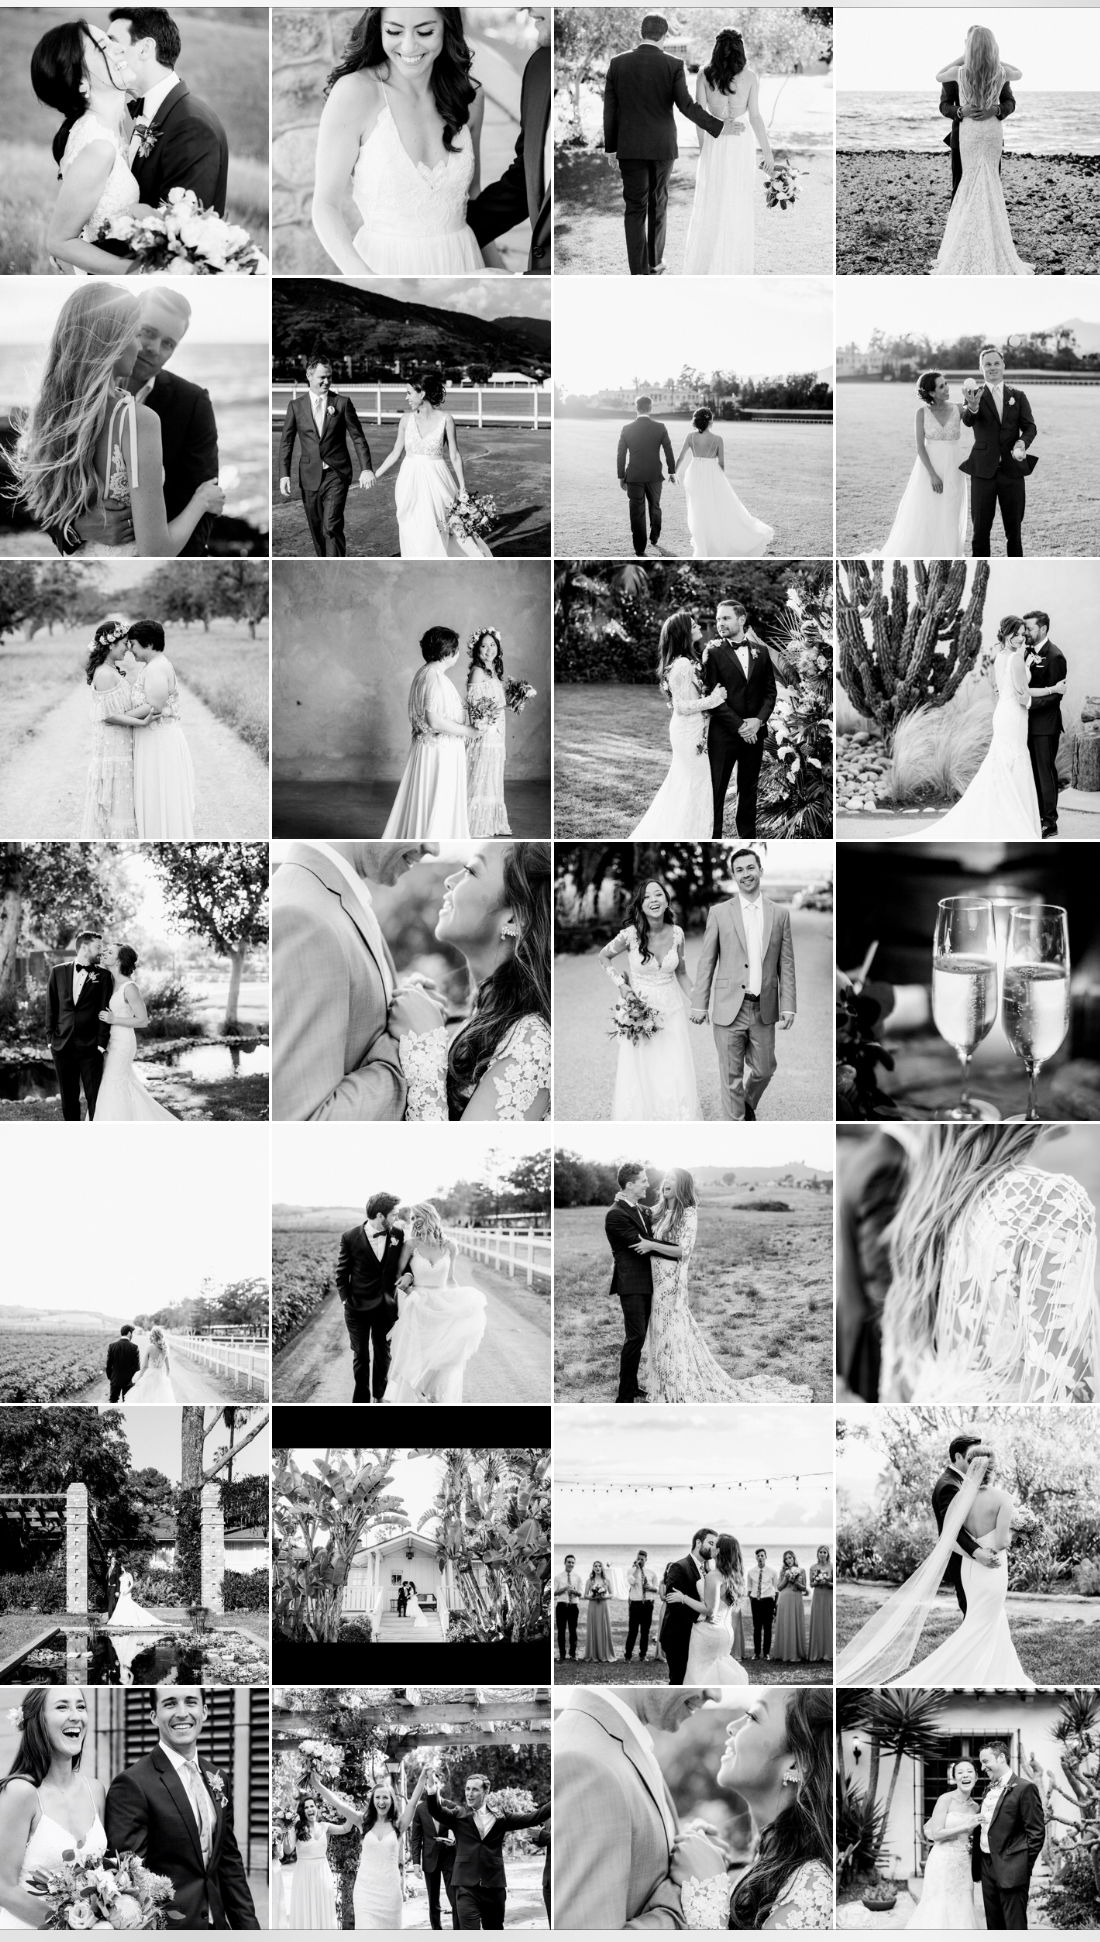 wedding_photography_black_and_white_best_of_california_rhianna_annadelores.PNG